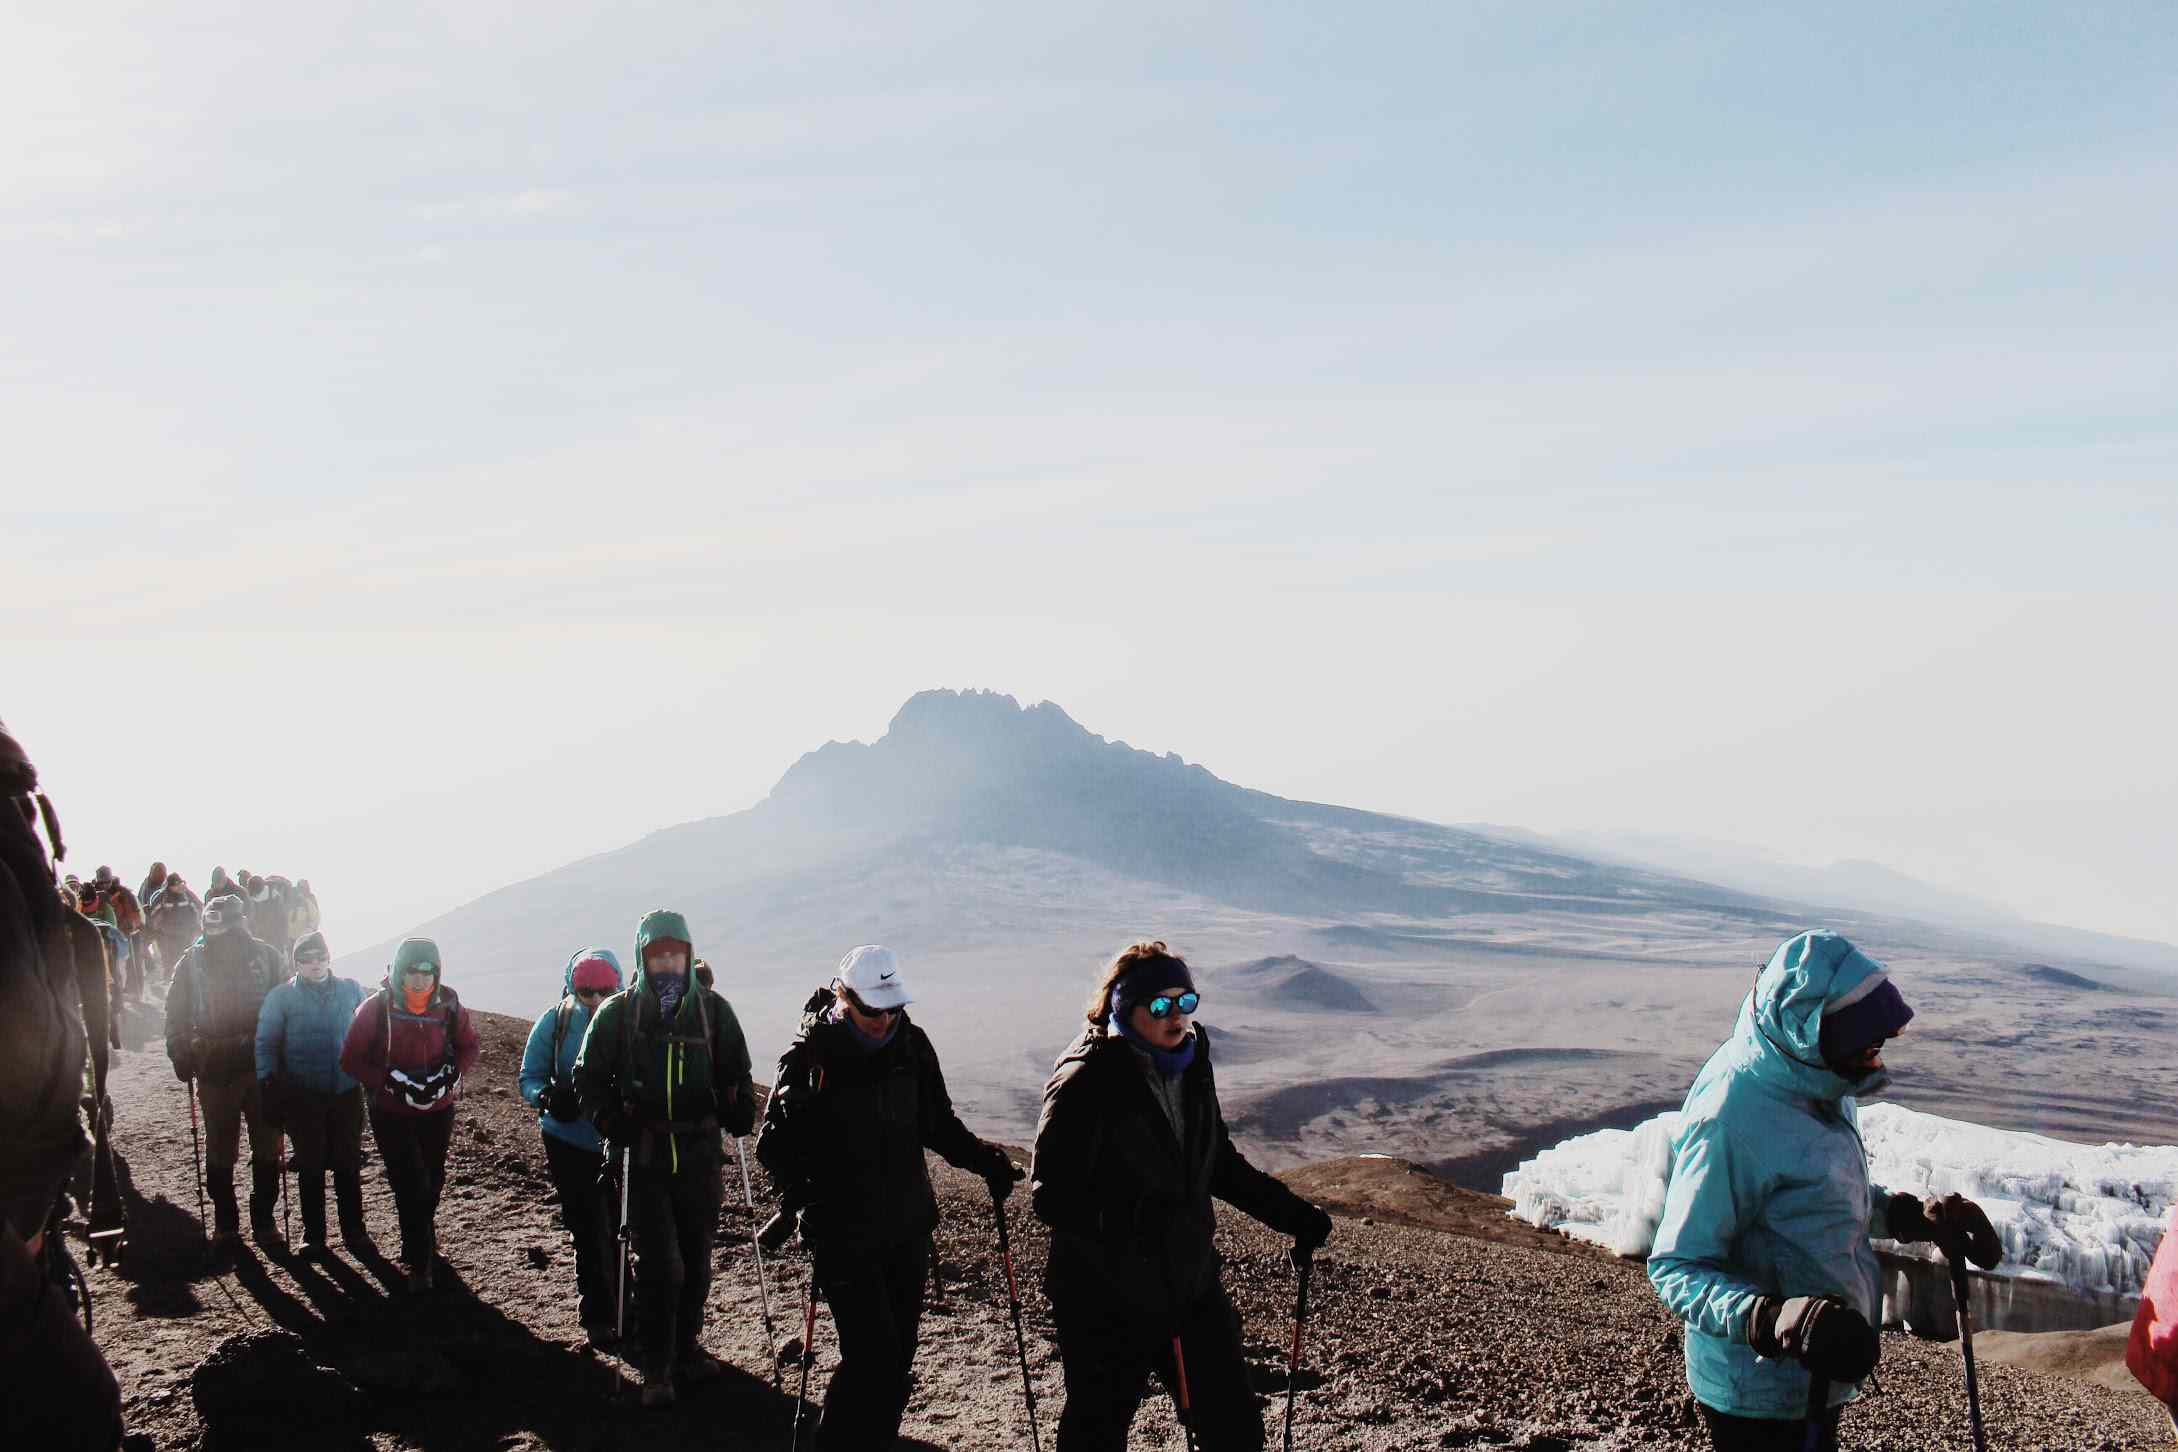 A group of hikers on Mt Kilimanjaro